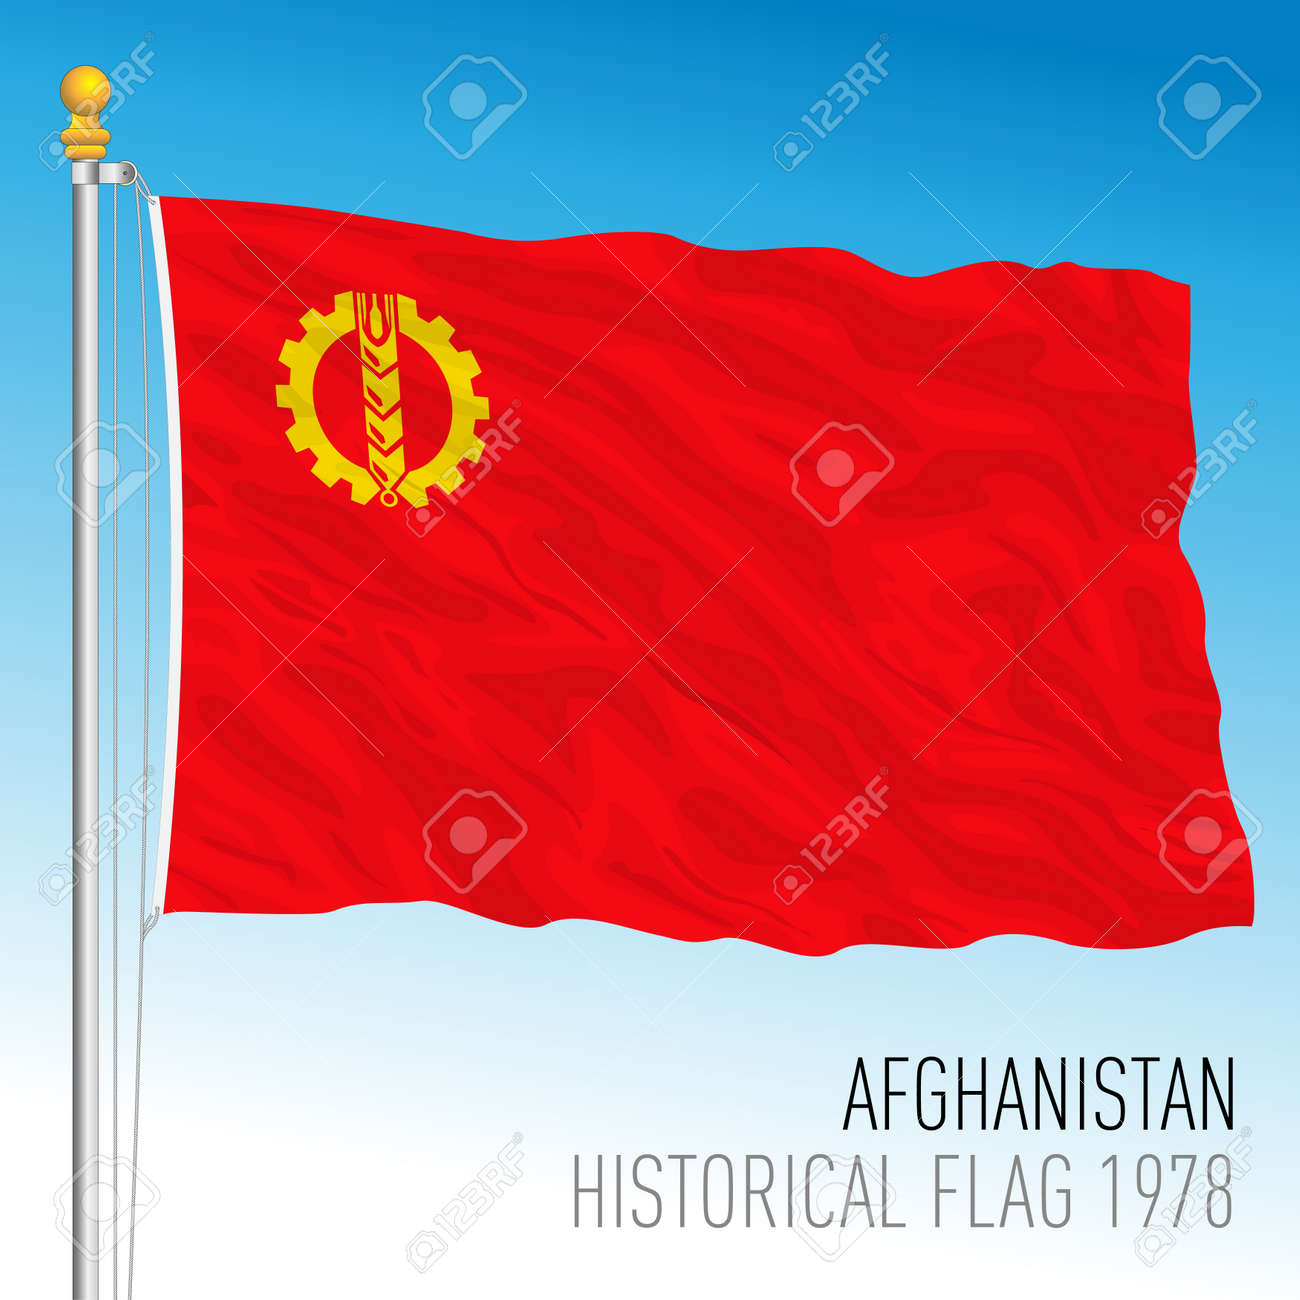 Afghanistan historical flag, 1978, asiatic country, vector illustration - 173297074